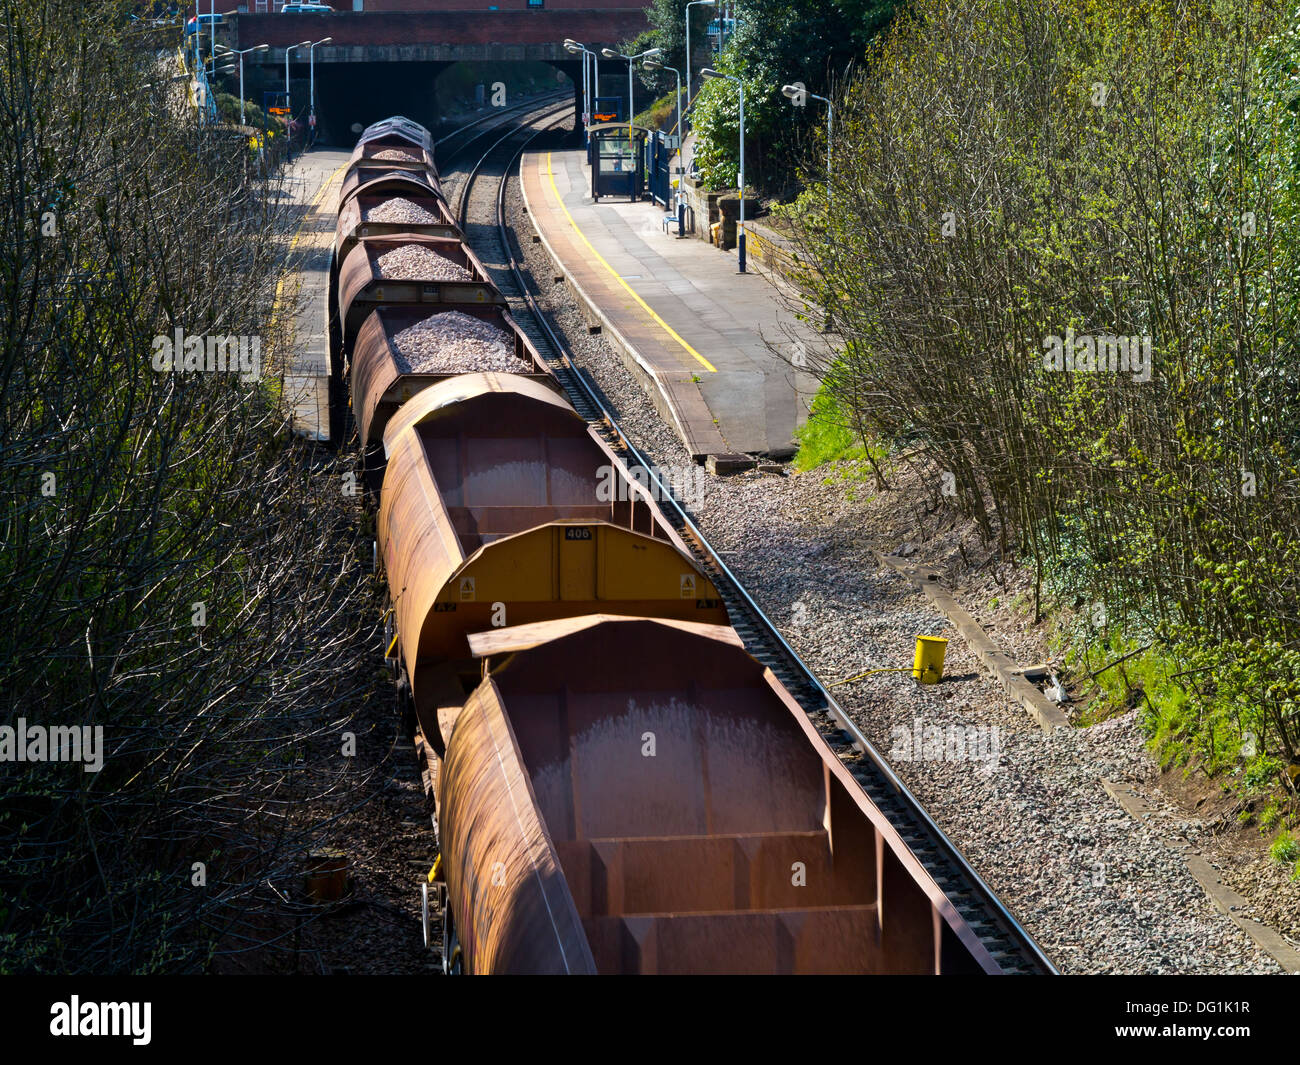 View looking down on goods train carrying freight including quarry stone through Belper railway station Derbyshire England UK - Stock Image